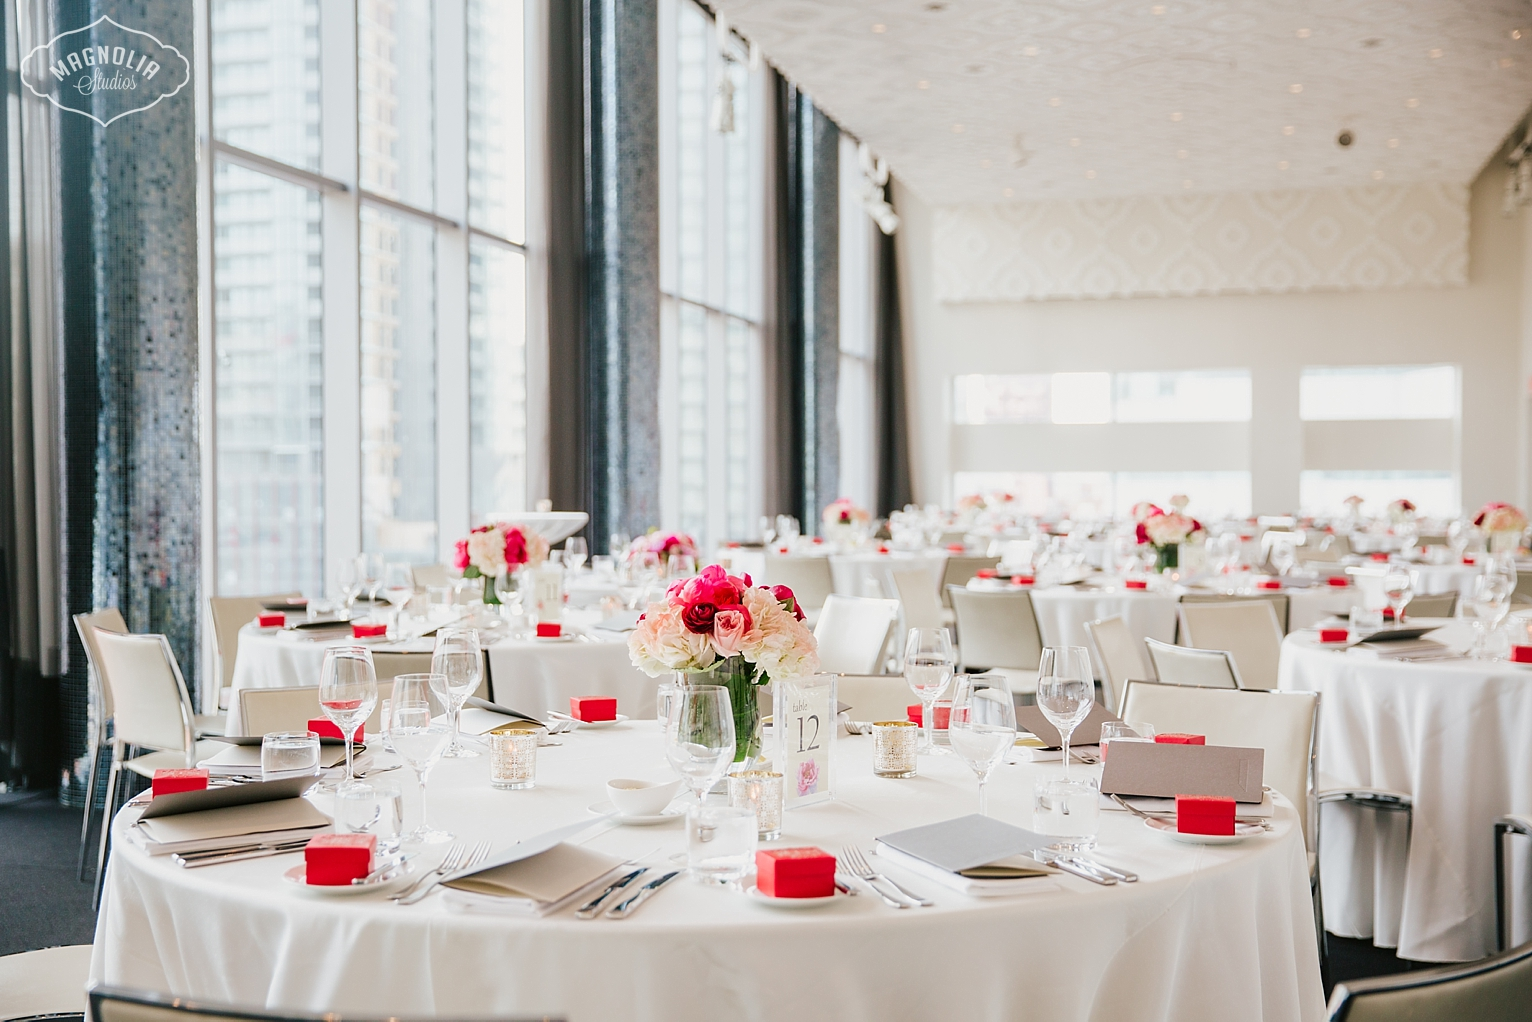 Malaparte Wedding Hall